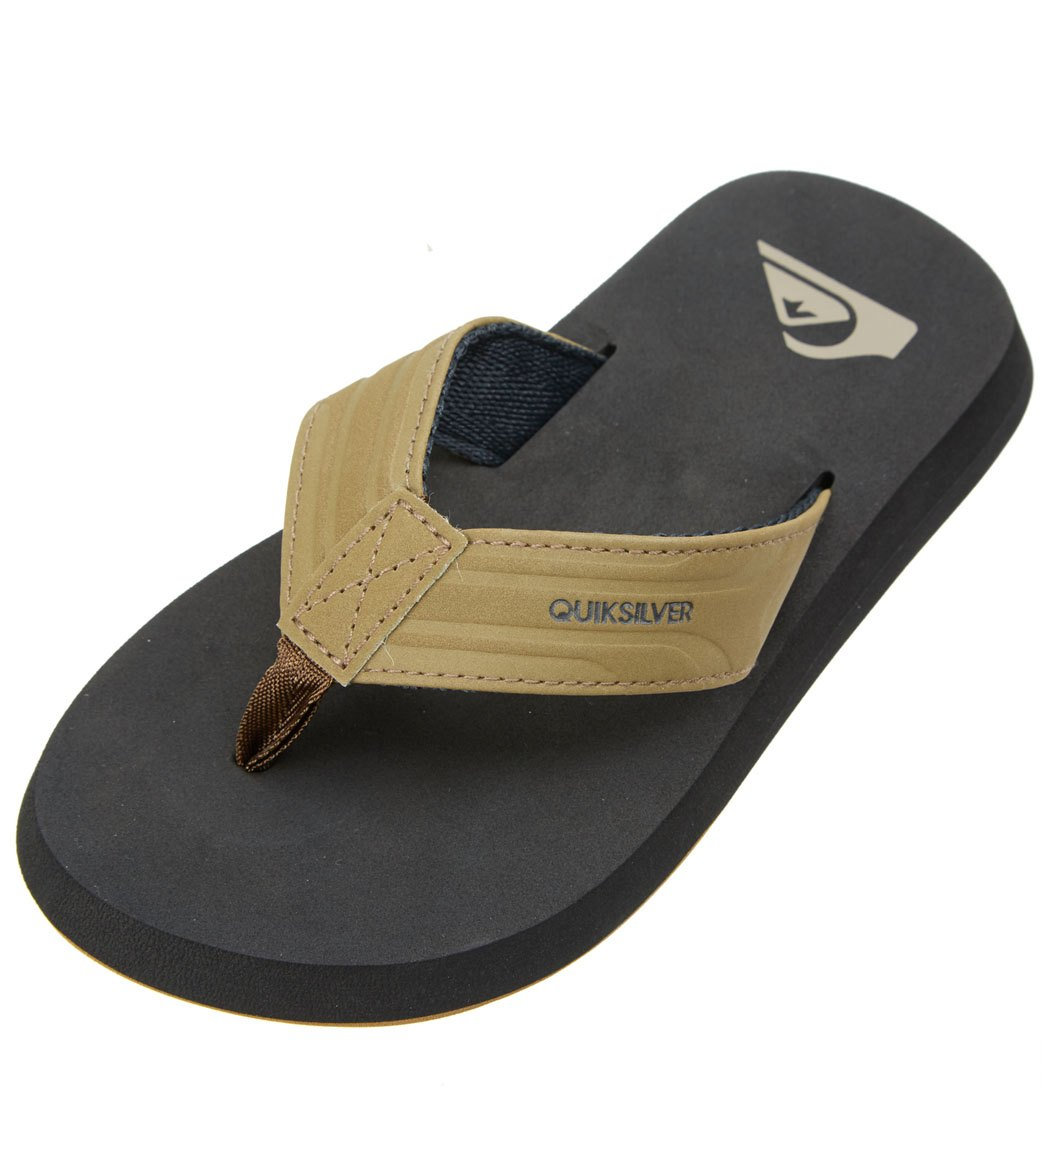 d979ad657f44 Quiksilver Boys  Monkey Wrench Flip Flop at SwimOutlet.com